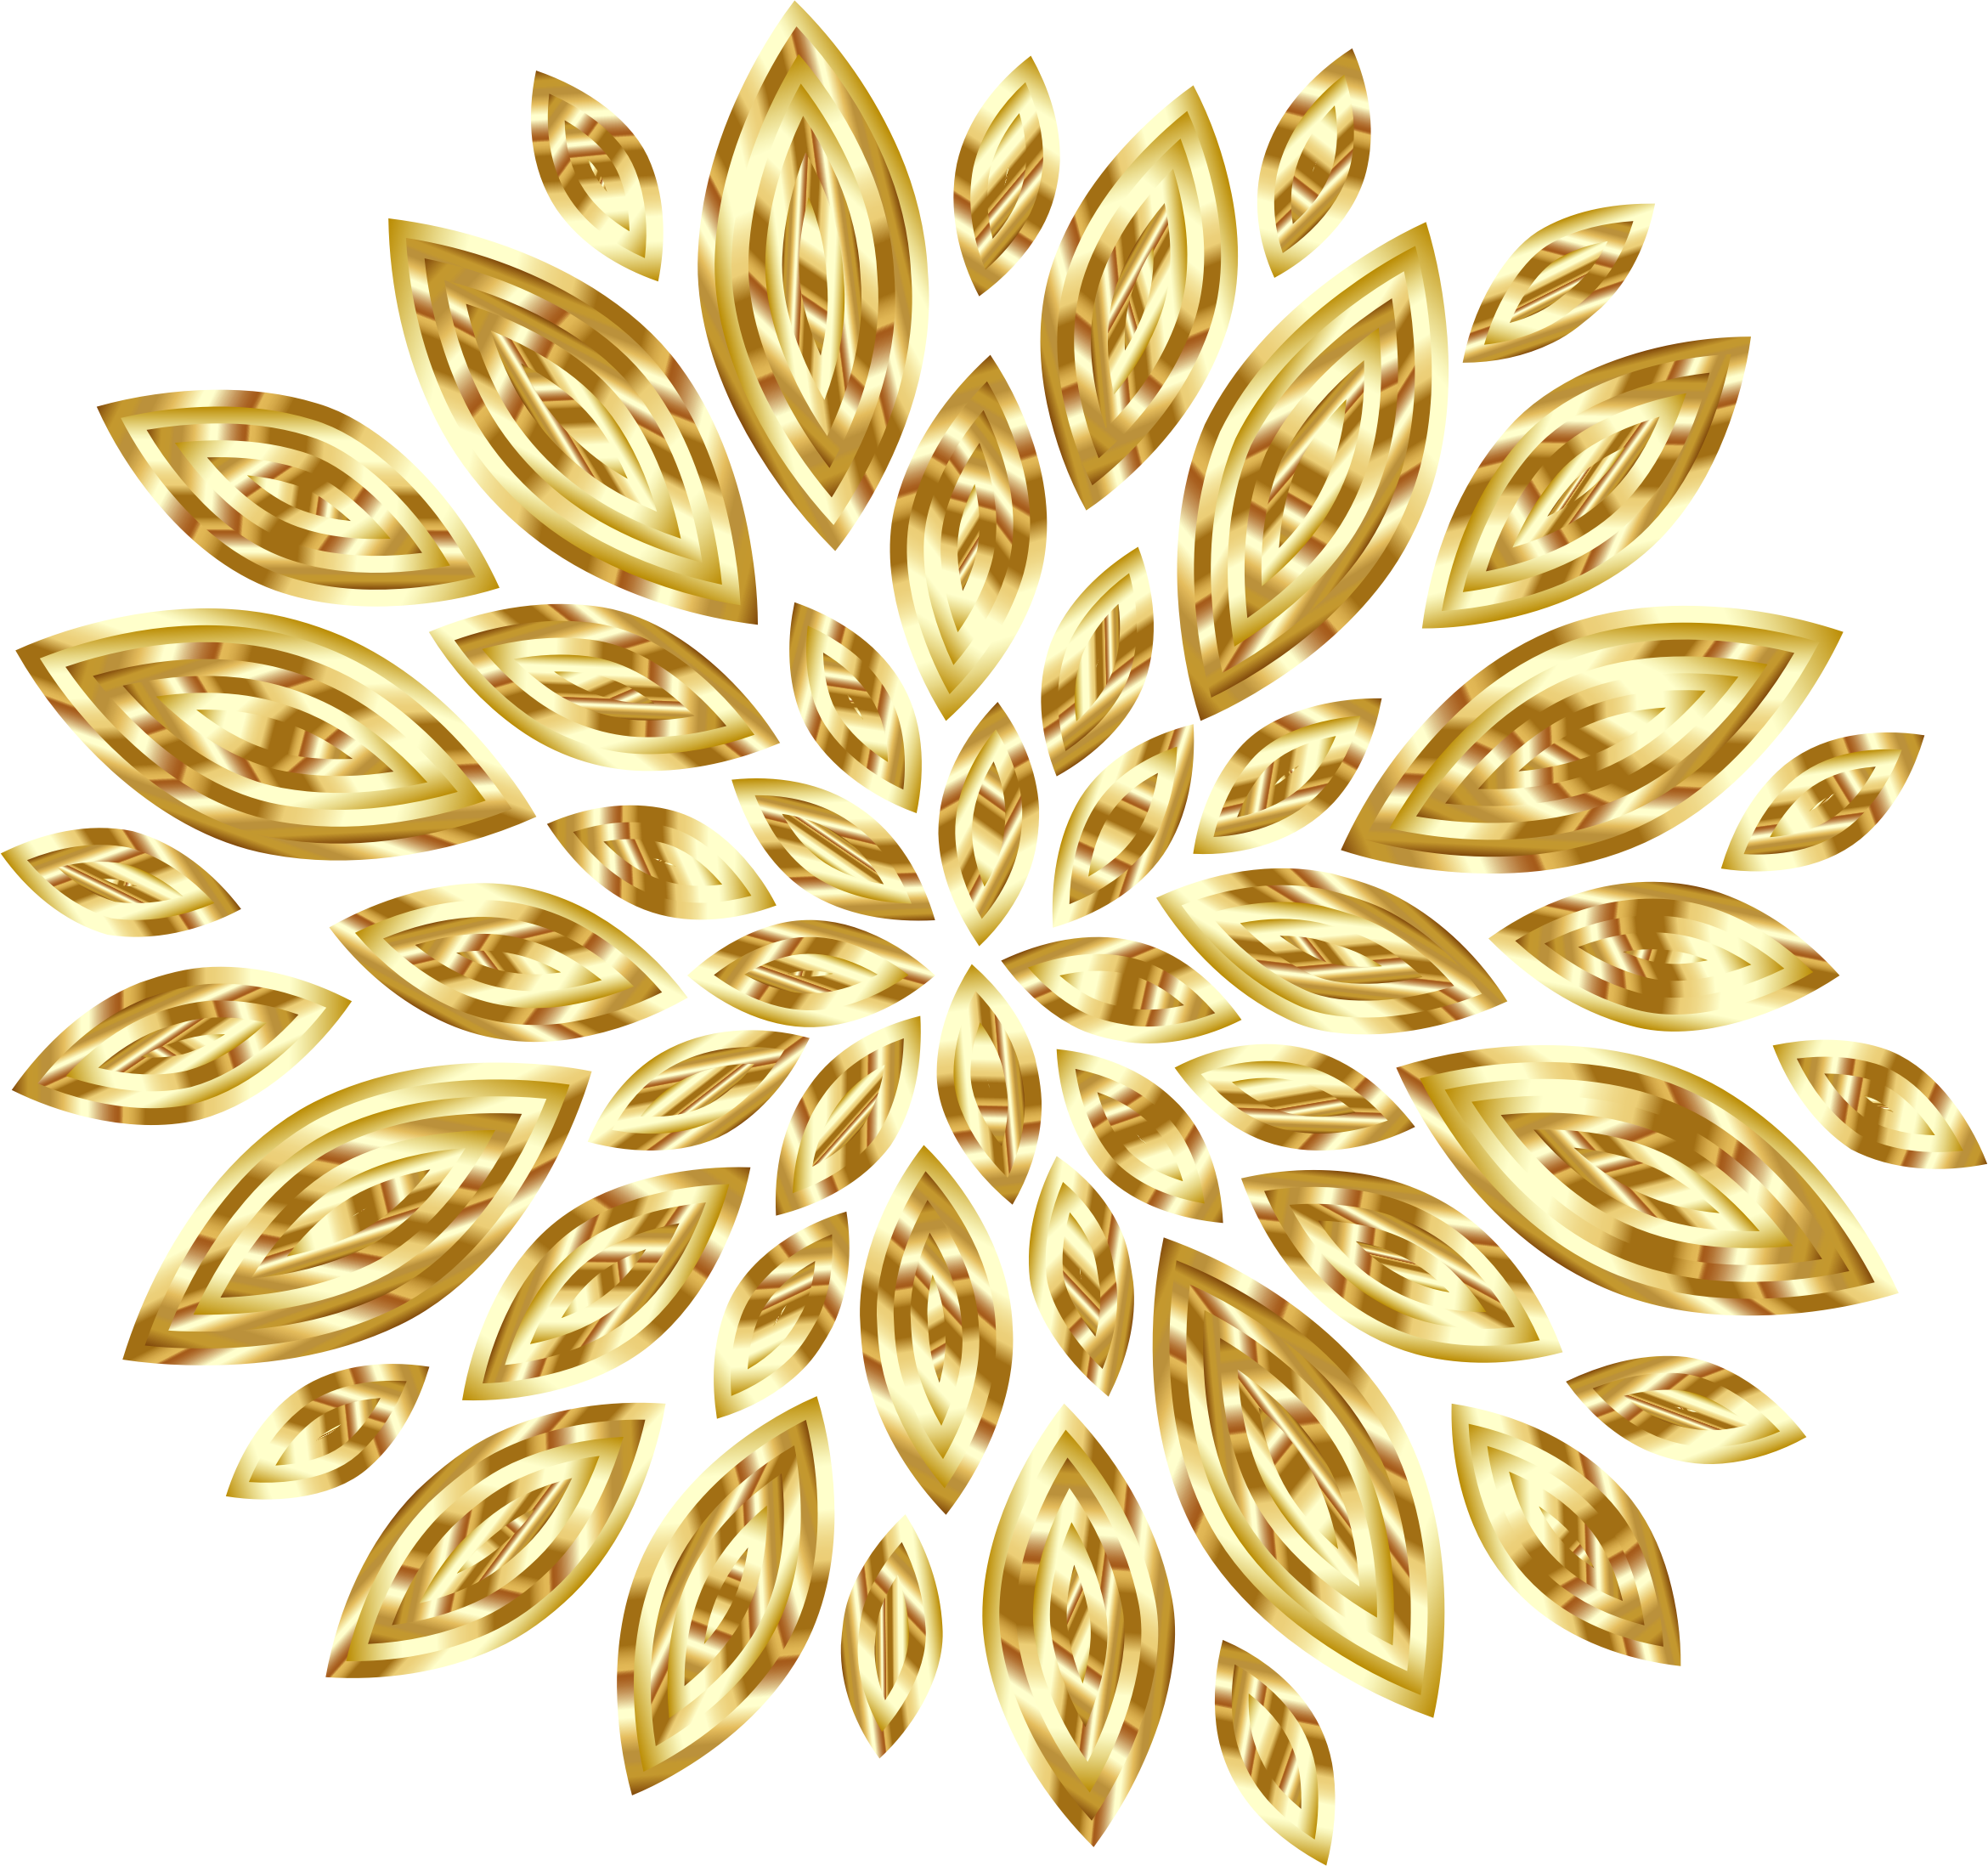 Gold Flower Petals Variation 2 by GDJ